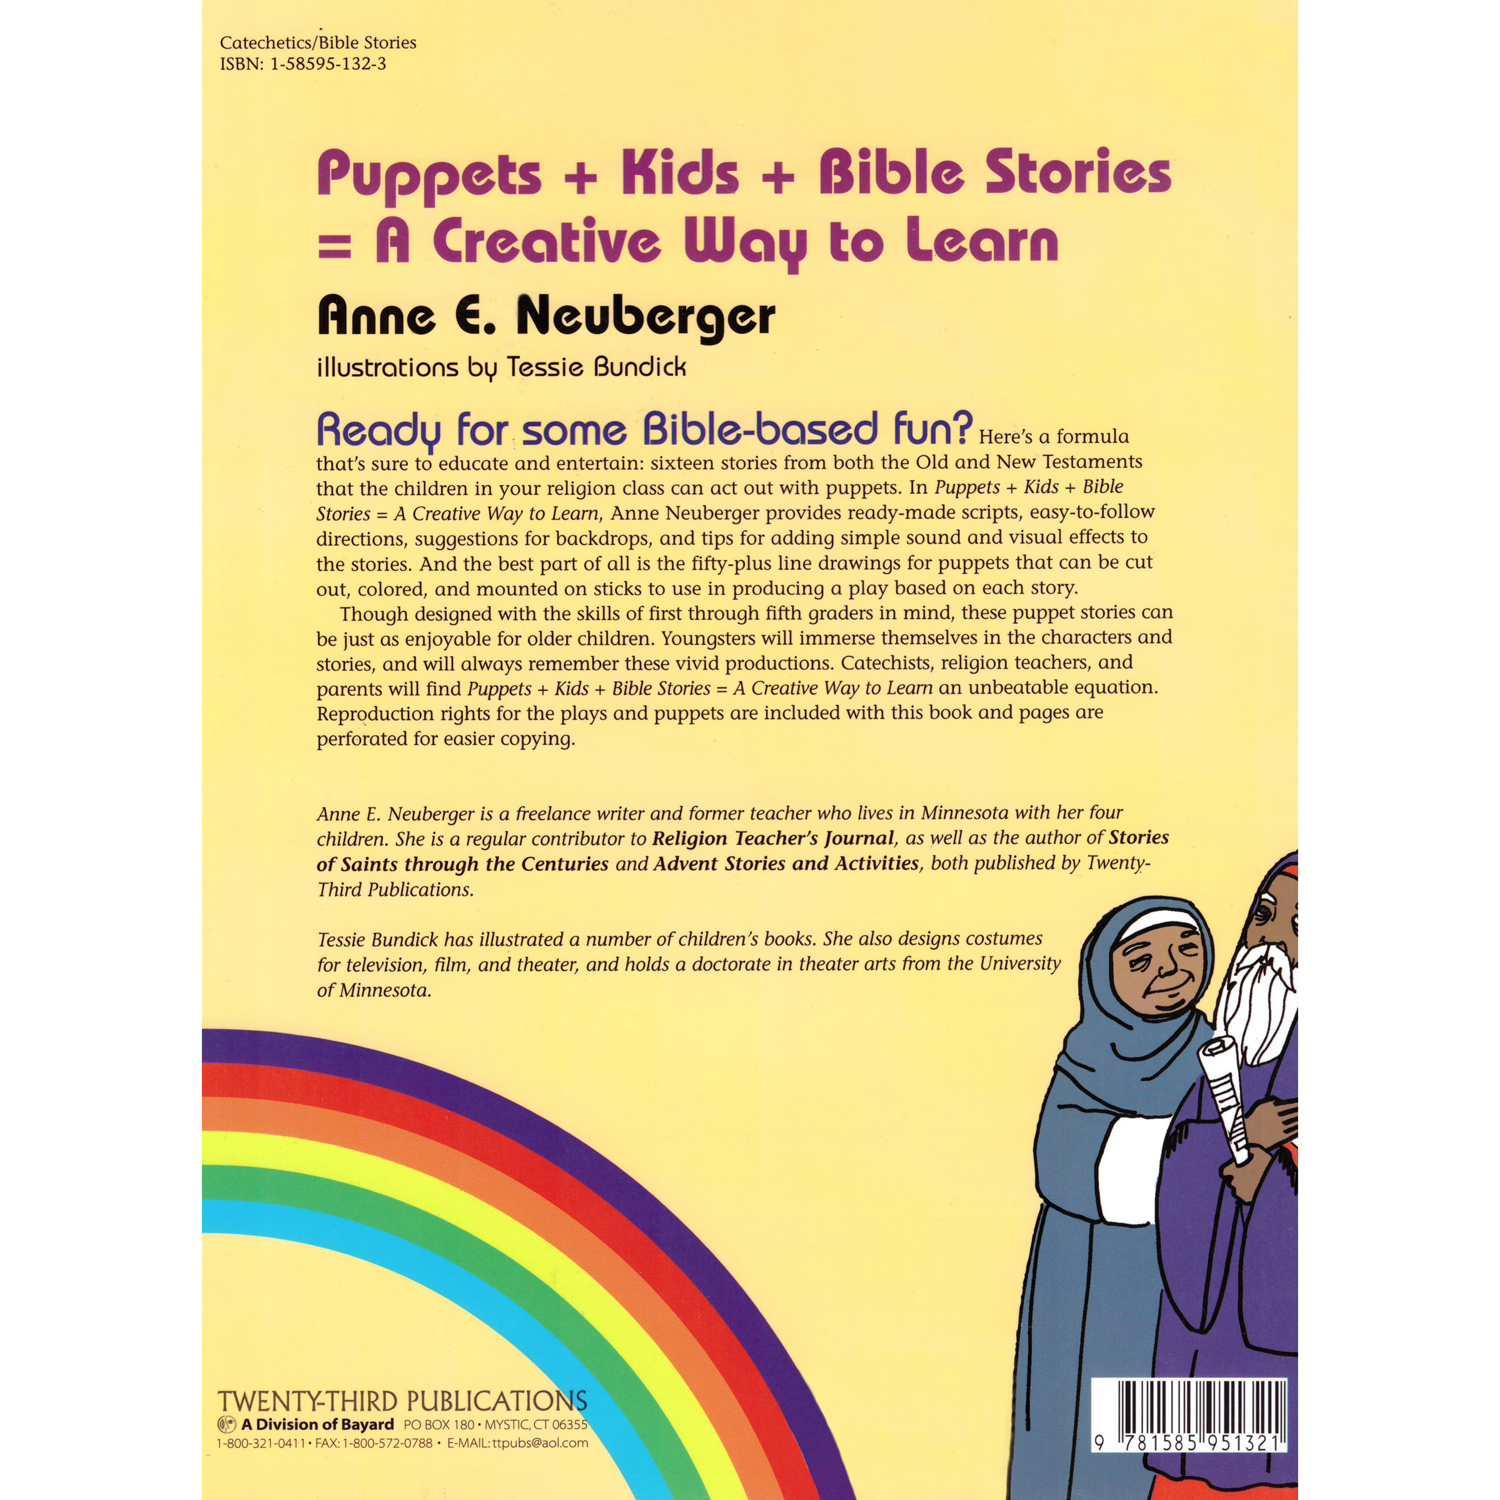 Puppets + Kids + Bible Stories = A Creative Way to Learn